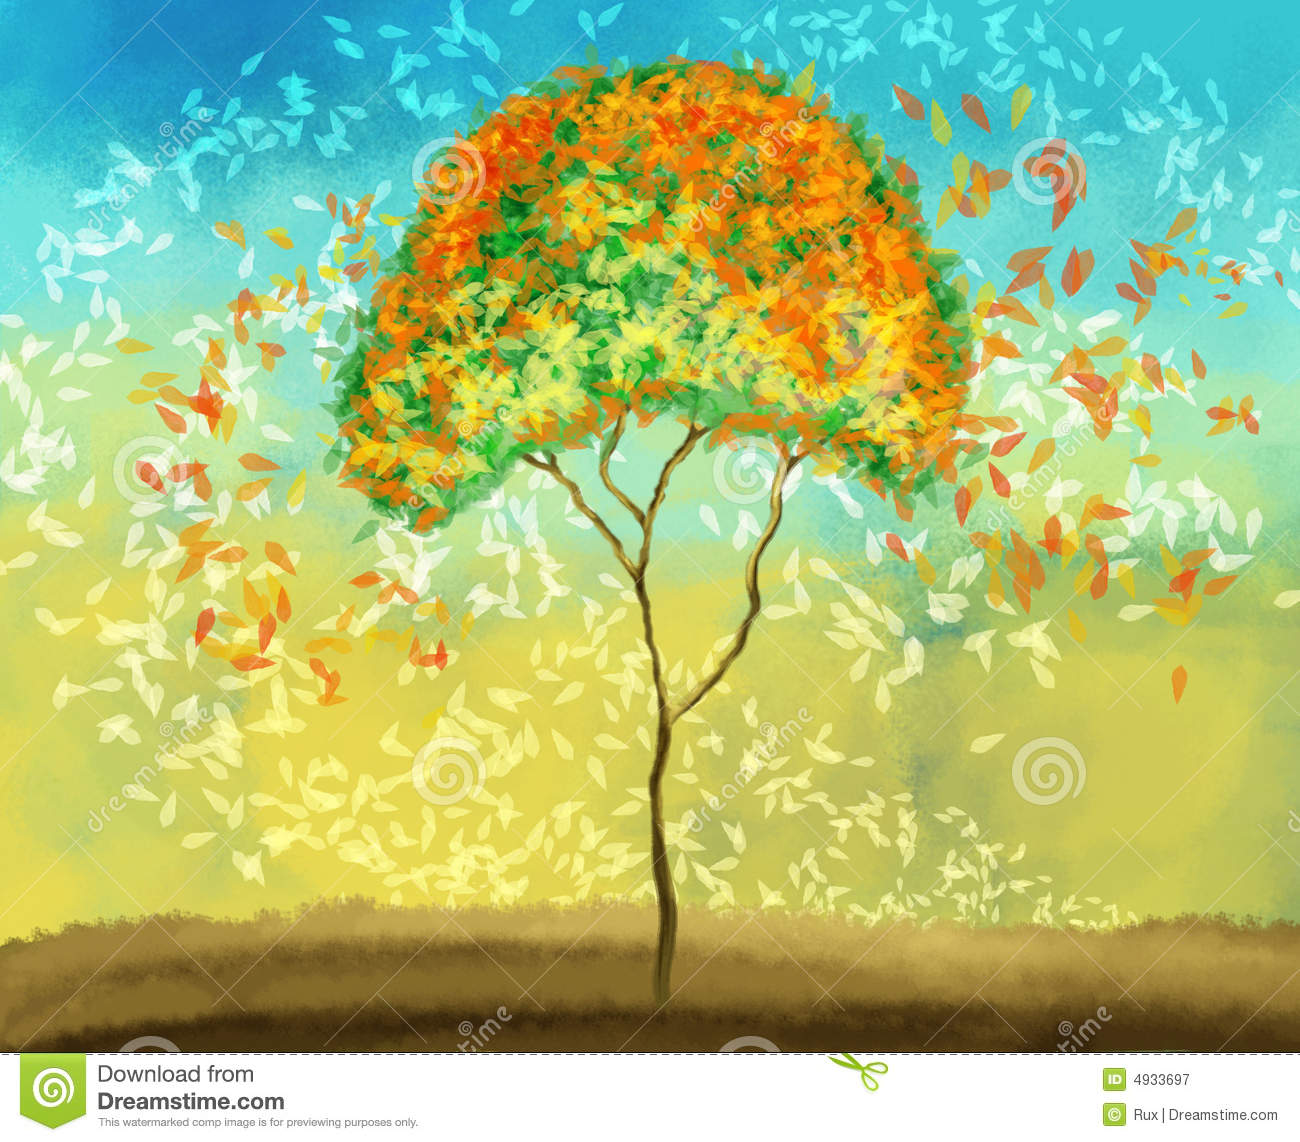 Painting of colorful tree stock illustration. Illustration of nature ...